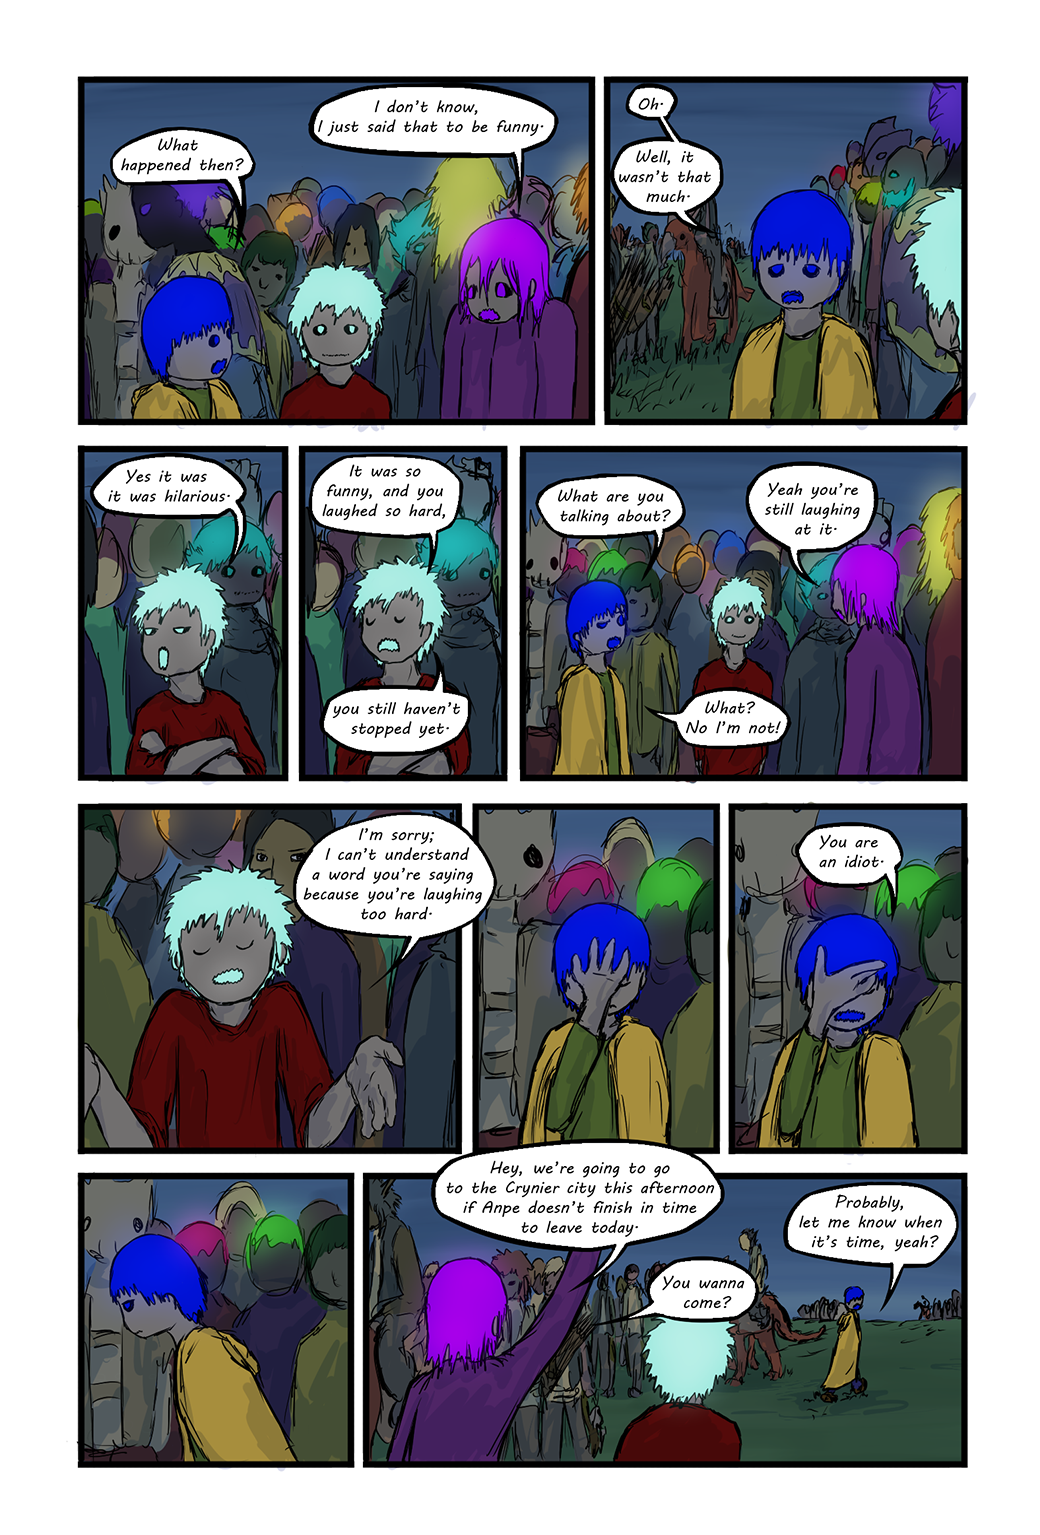 The Great Fireflood Page 52